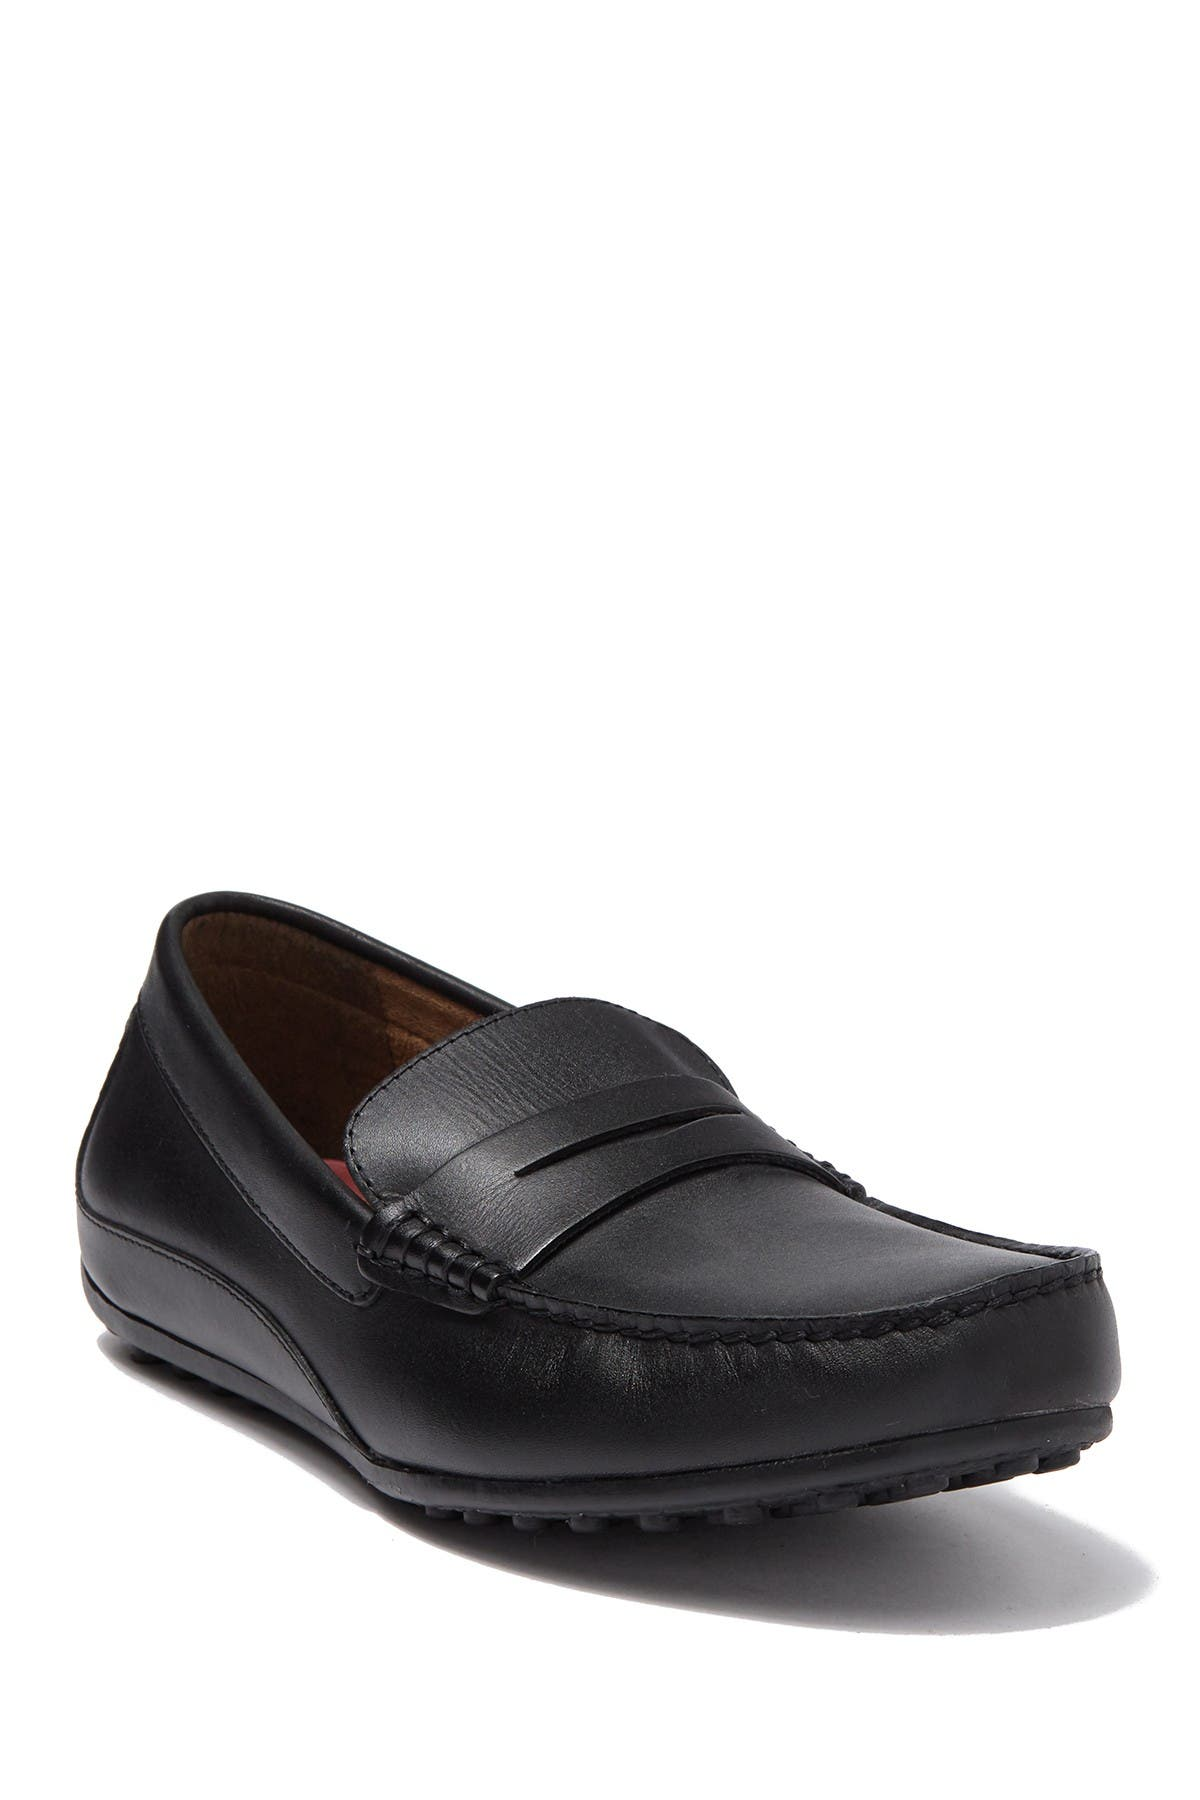 Image of Florsheim Throttle Leather Penny Loafer